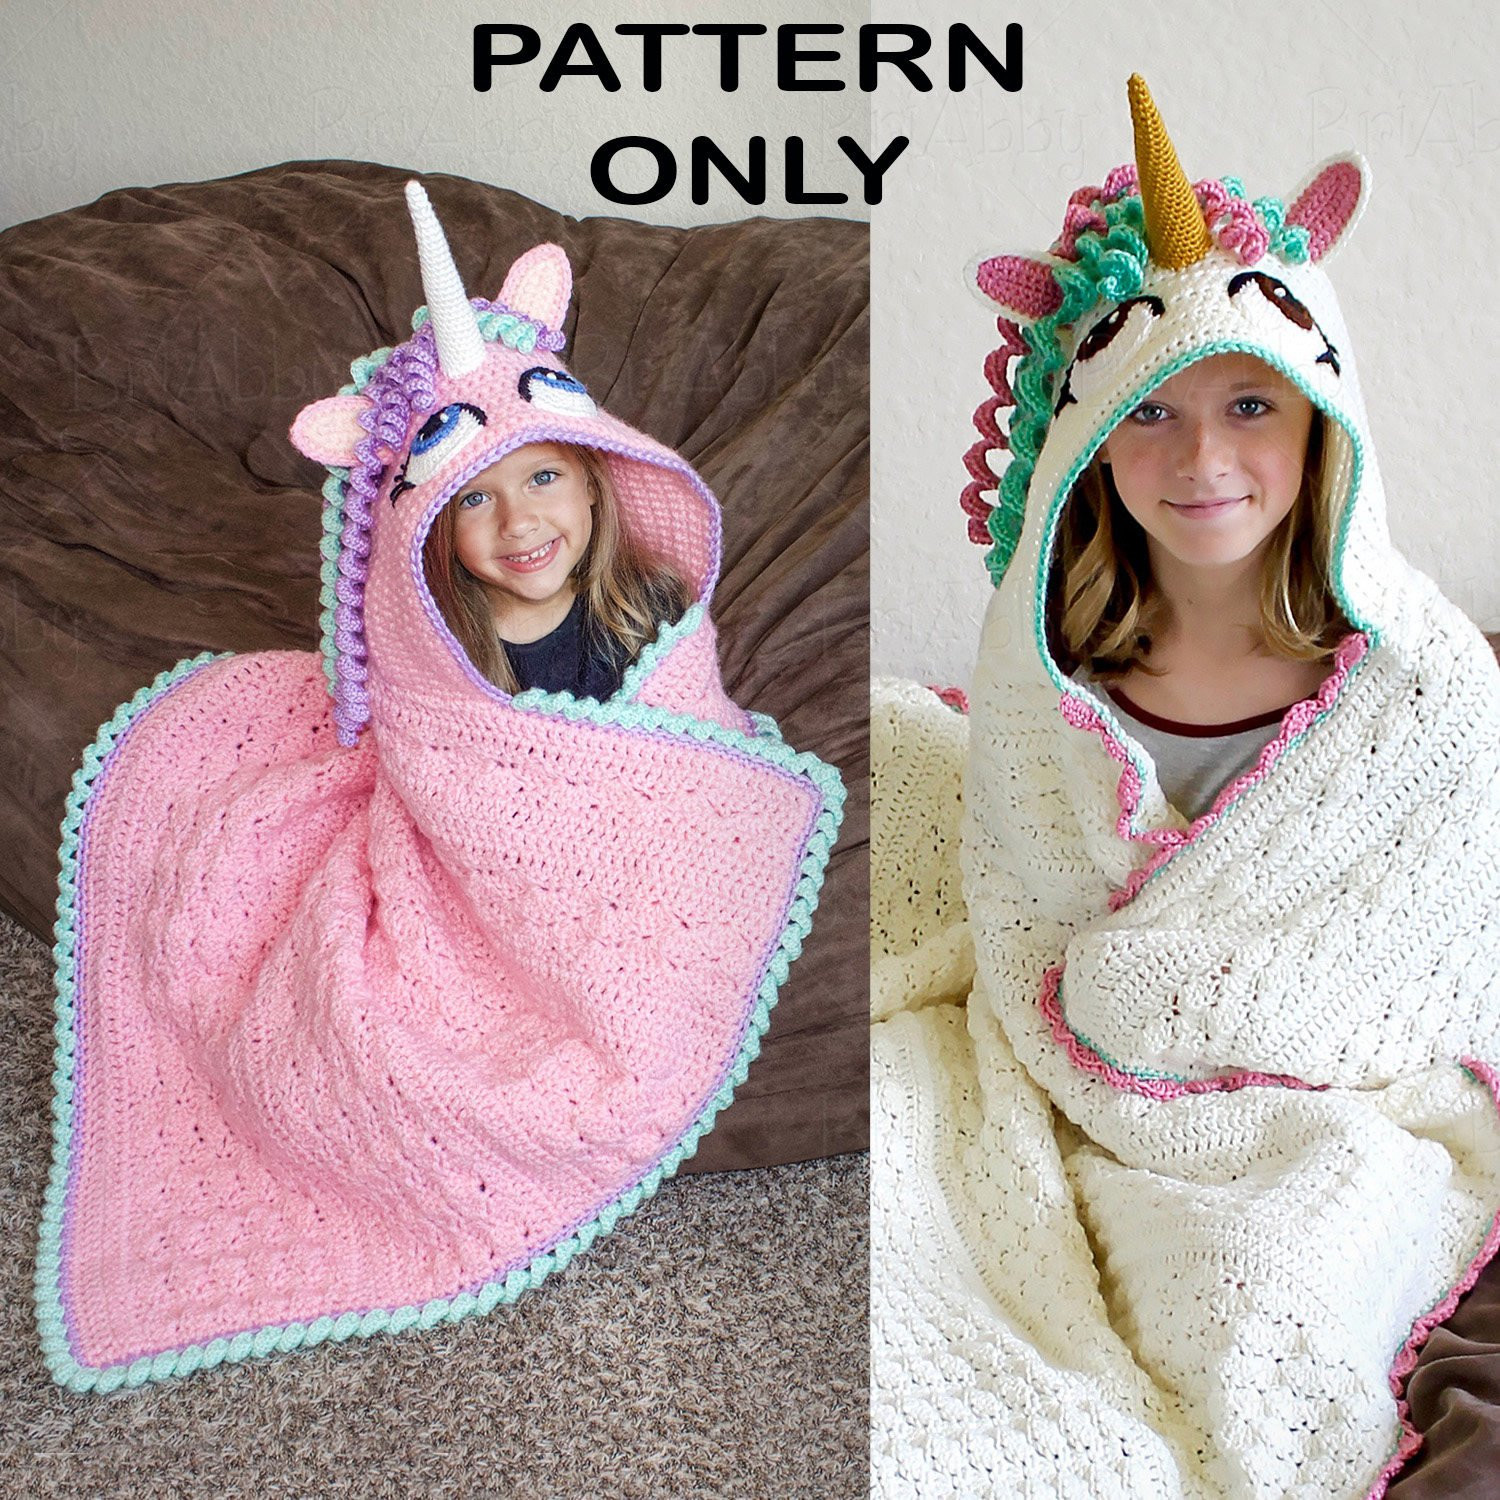 Unicorn Blanket Pattern Lovely Crochet Pattern Hooded Unicorn Blanket Pattern Pdf File Of Lovely 48 Photos Unicorn Blanket Pattern